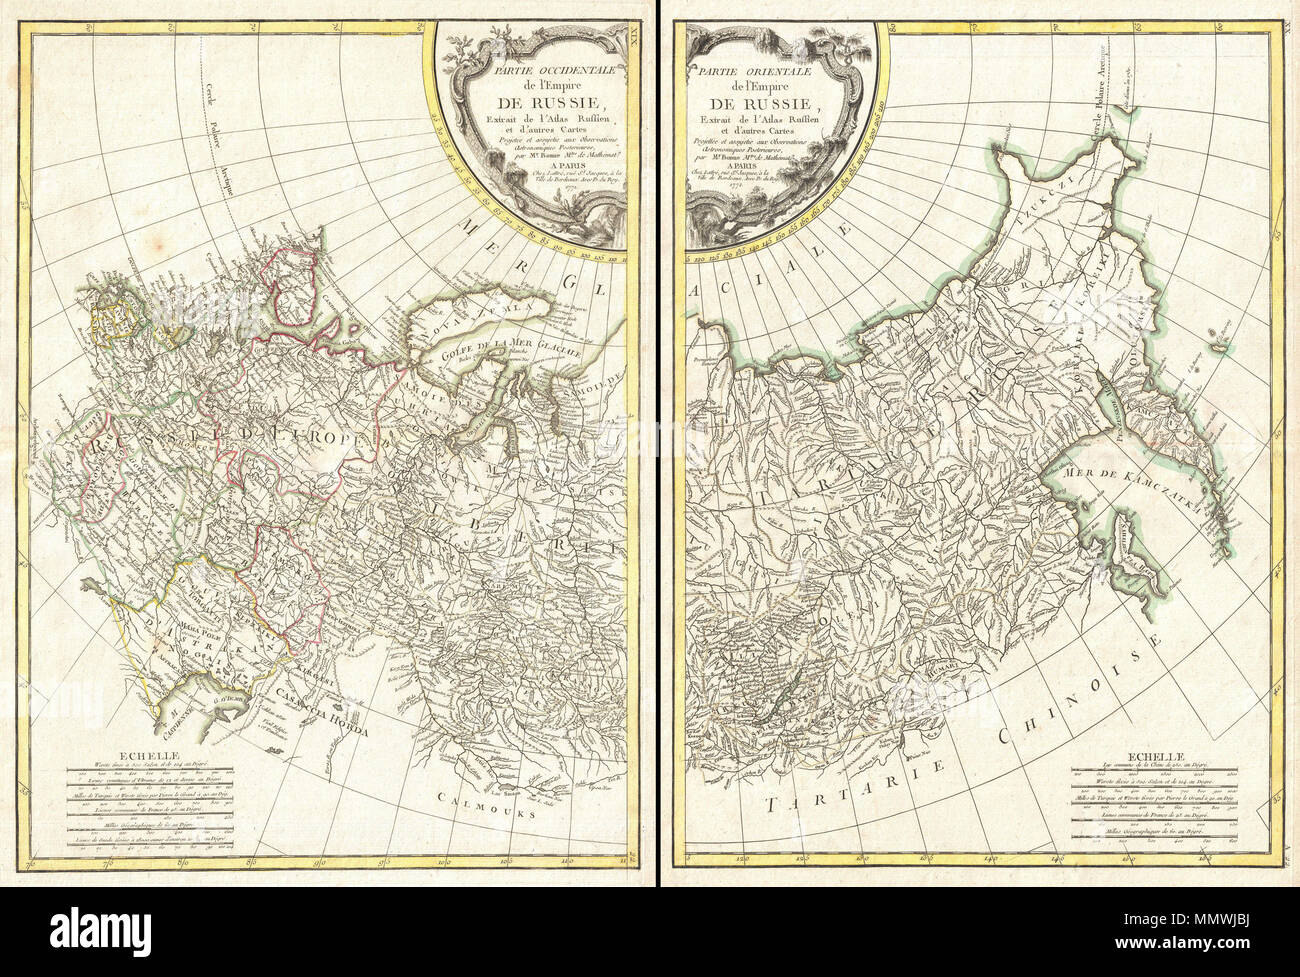 .  English: A beautiful example of Rigobert Bonne's 1771 decorative map of Russia. On two sheets, covers from the Baltic Sea to Siberia and the Bering Straits, extends south as far as the Caspian Sea, Sakhalin and Kamchatka, extends north well into the Arctic. Details this fast region and its many complex river systems and mountains ranges. European Russia is divided into various smaller states including Kiev, Woronez, Bielogorod, Moscow, Astrakan, Kasan, etc. The extreme northeast clearly exhibits information gathered by the explorations of Vitus Bering and Tschirikow, especially with regard  Stock Photo